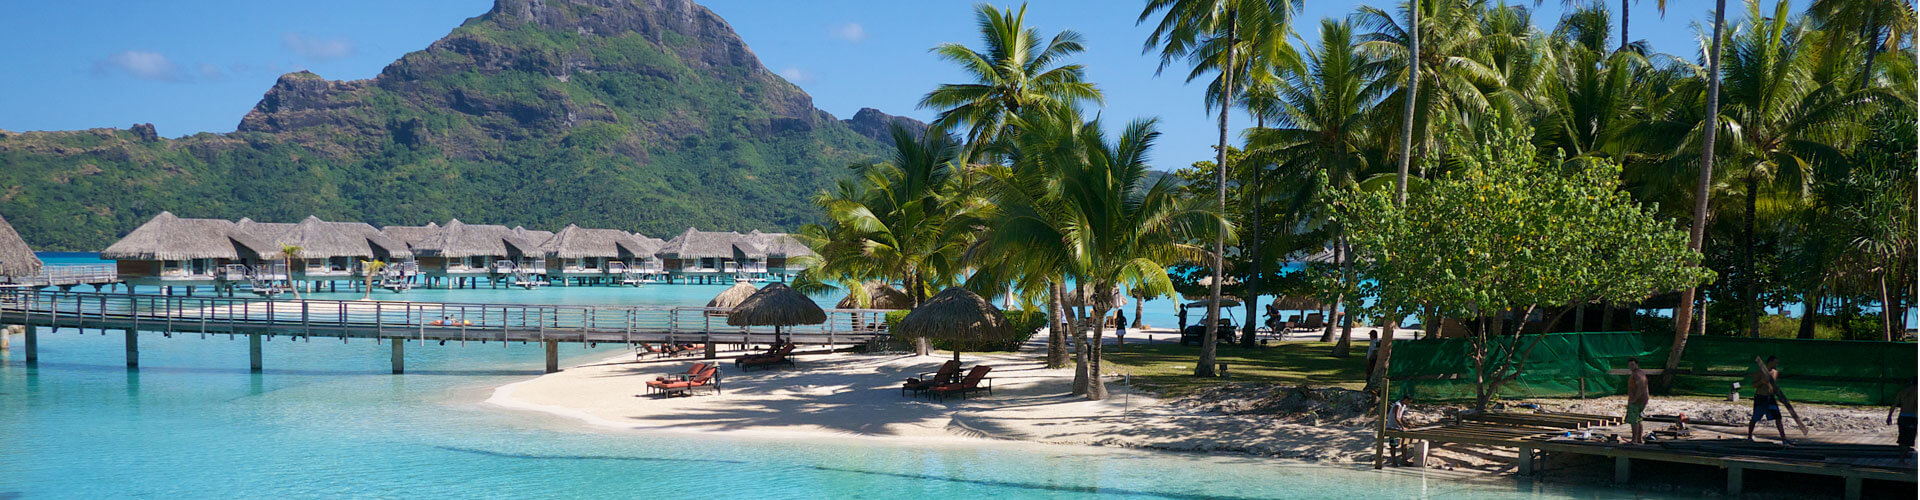 overwater bungallow in the hotel intercontinental Bora Bora Thalasso and spa